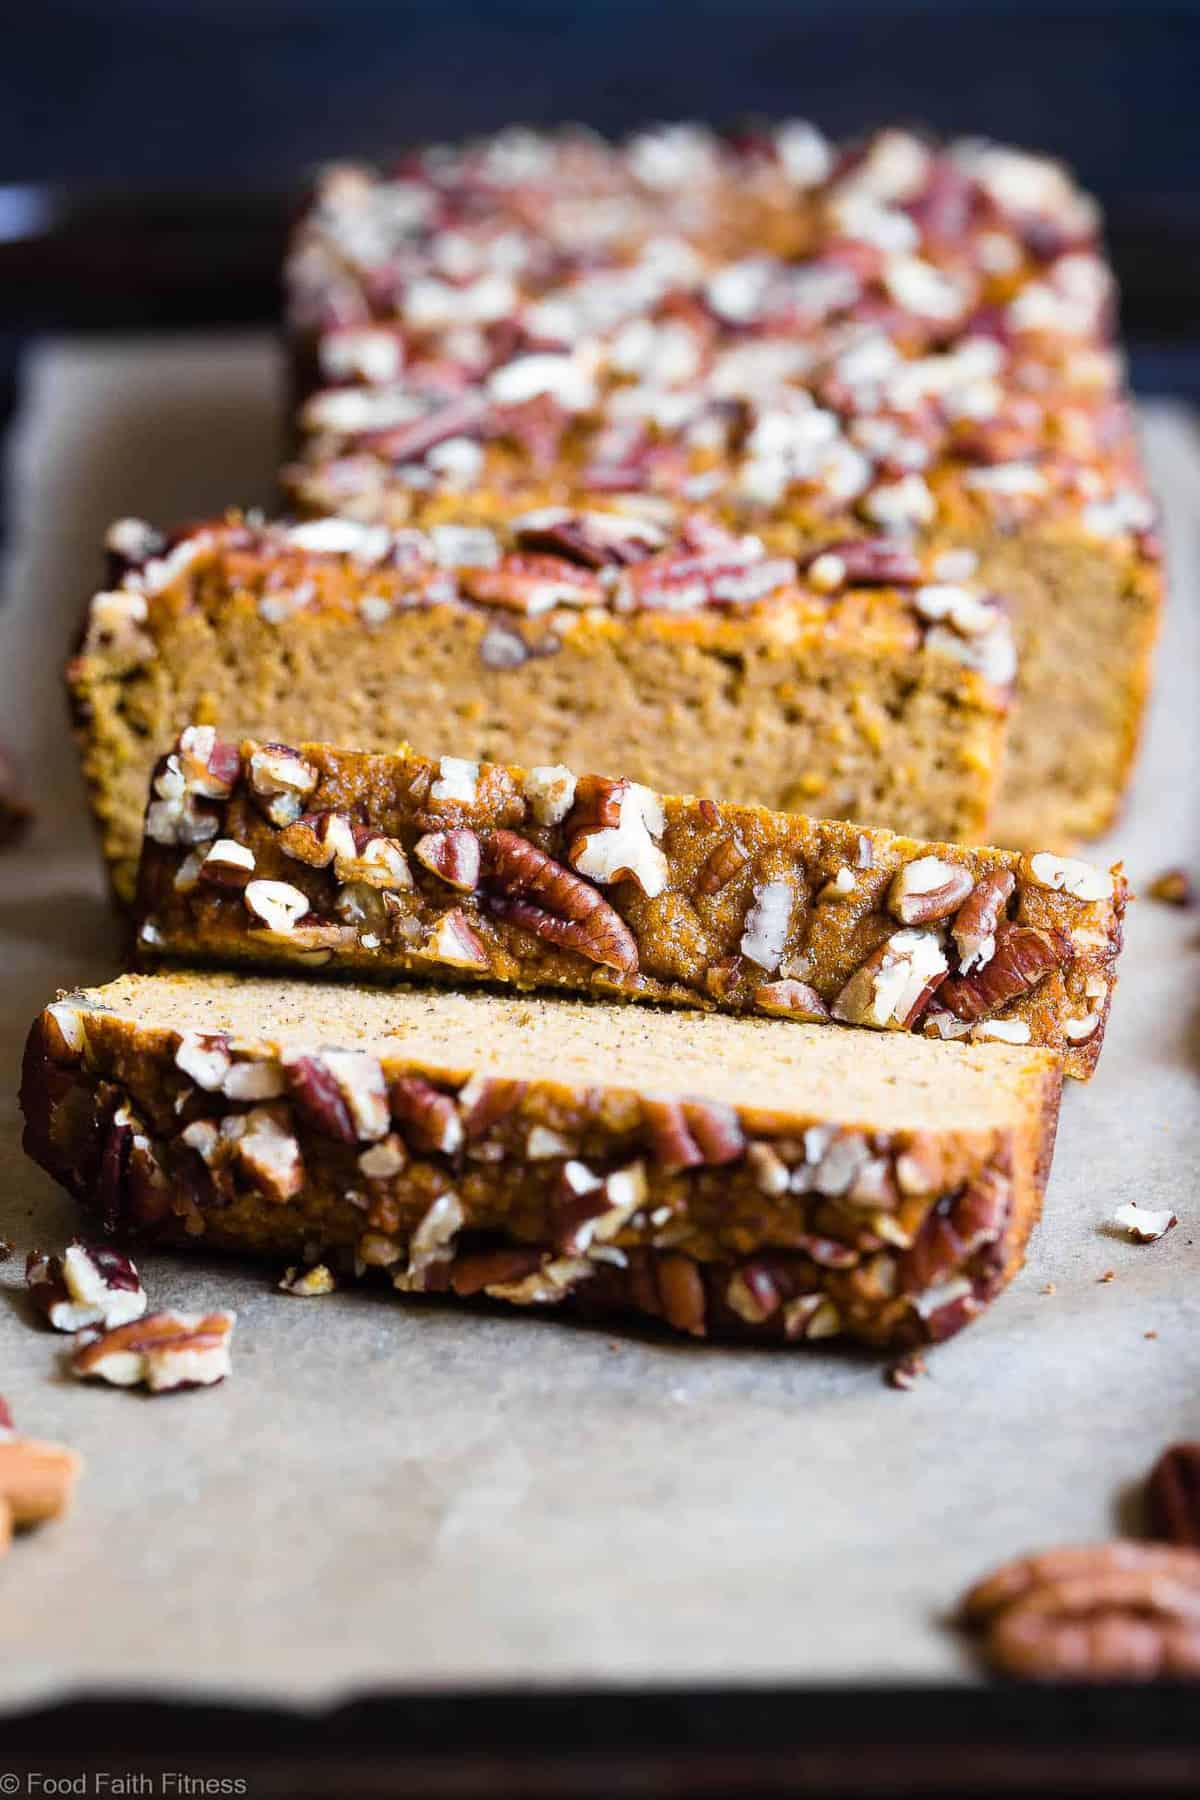 Gluten Free Paleo Pumpkin Bread Recipe - This EASY, healthy pumpkin bread is SO moist, chewy and perfectly spicy-sweet! All the best parts of fall in a simple, wholesome recipe that is great for breakfasts or snacks! | #Foodfaithfitness | #Glutenfree #Paleo #Healthy #Grainfree #Pumpkin